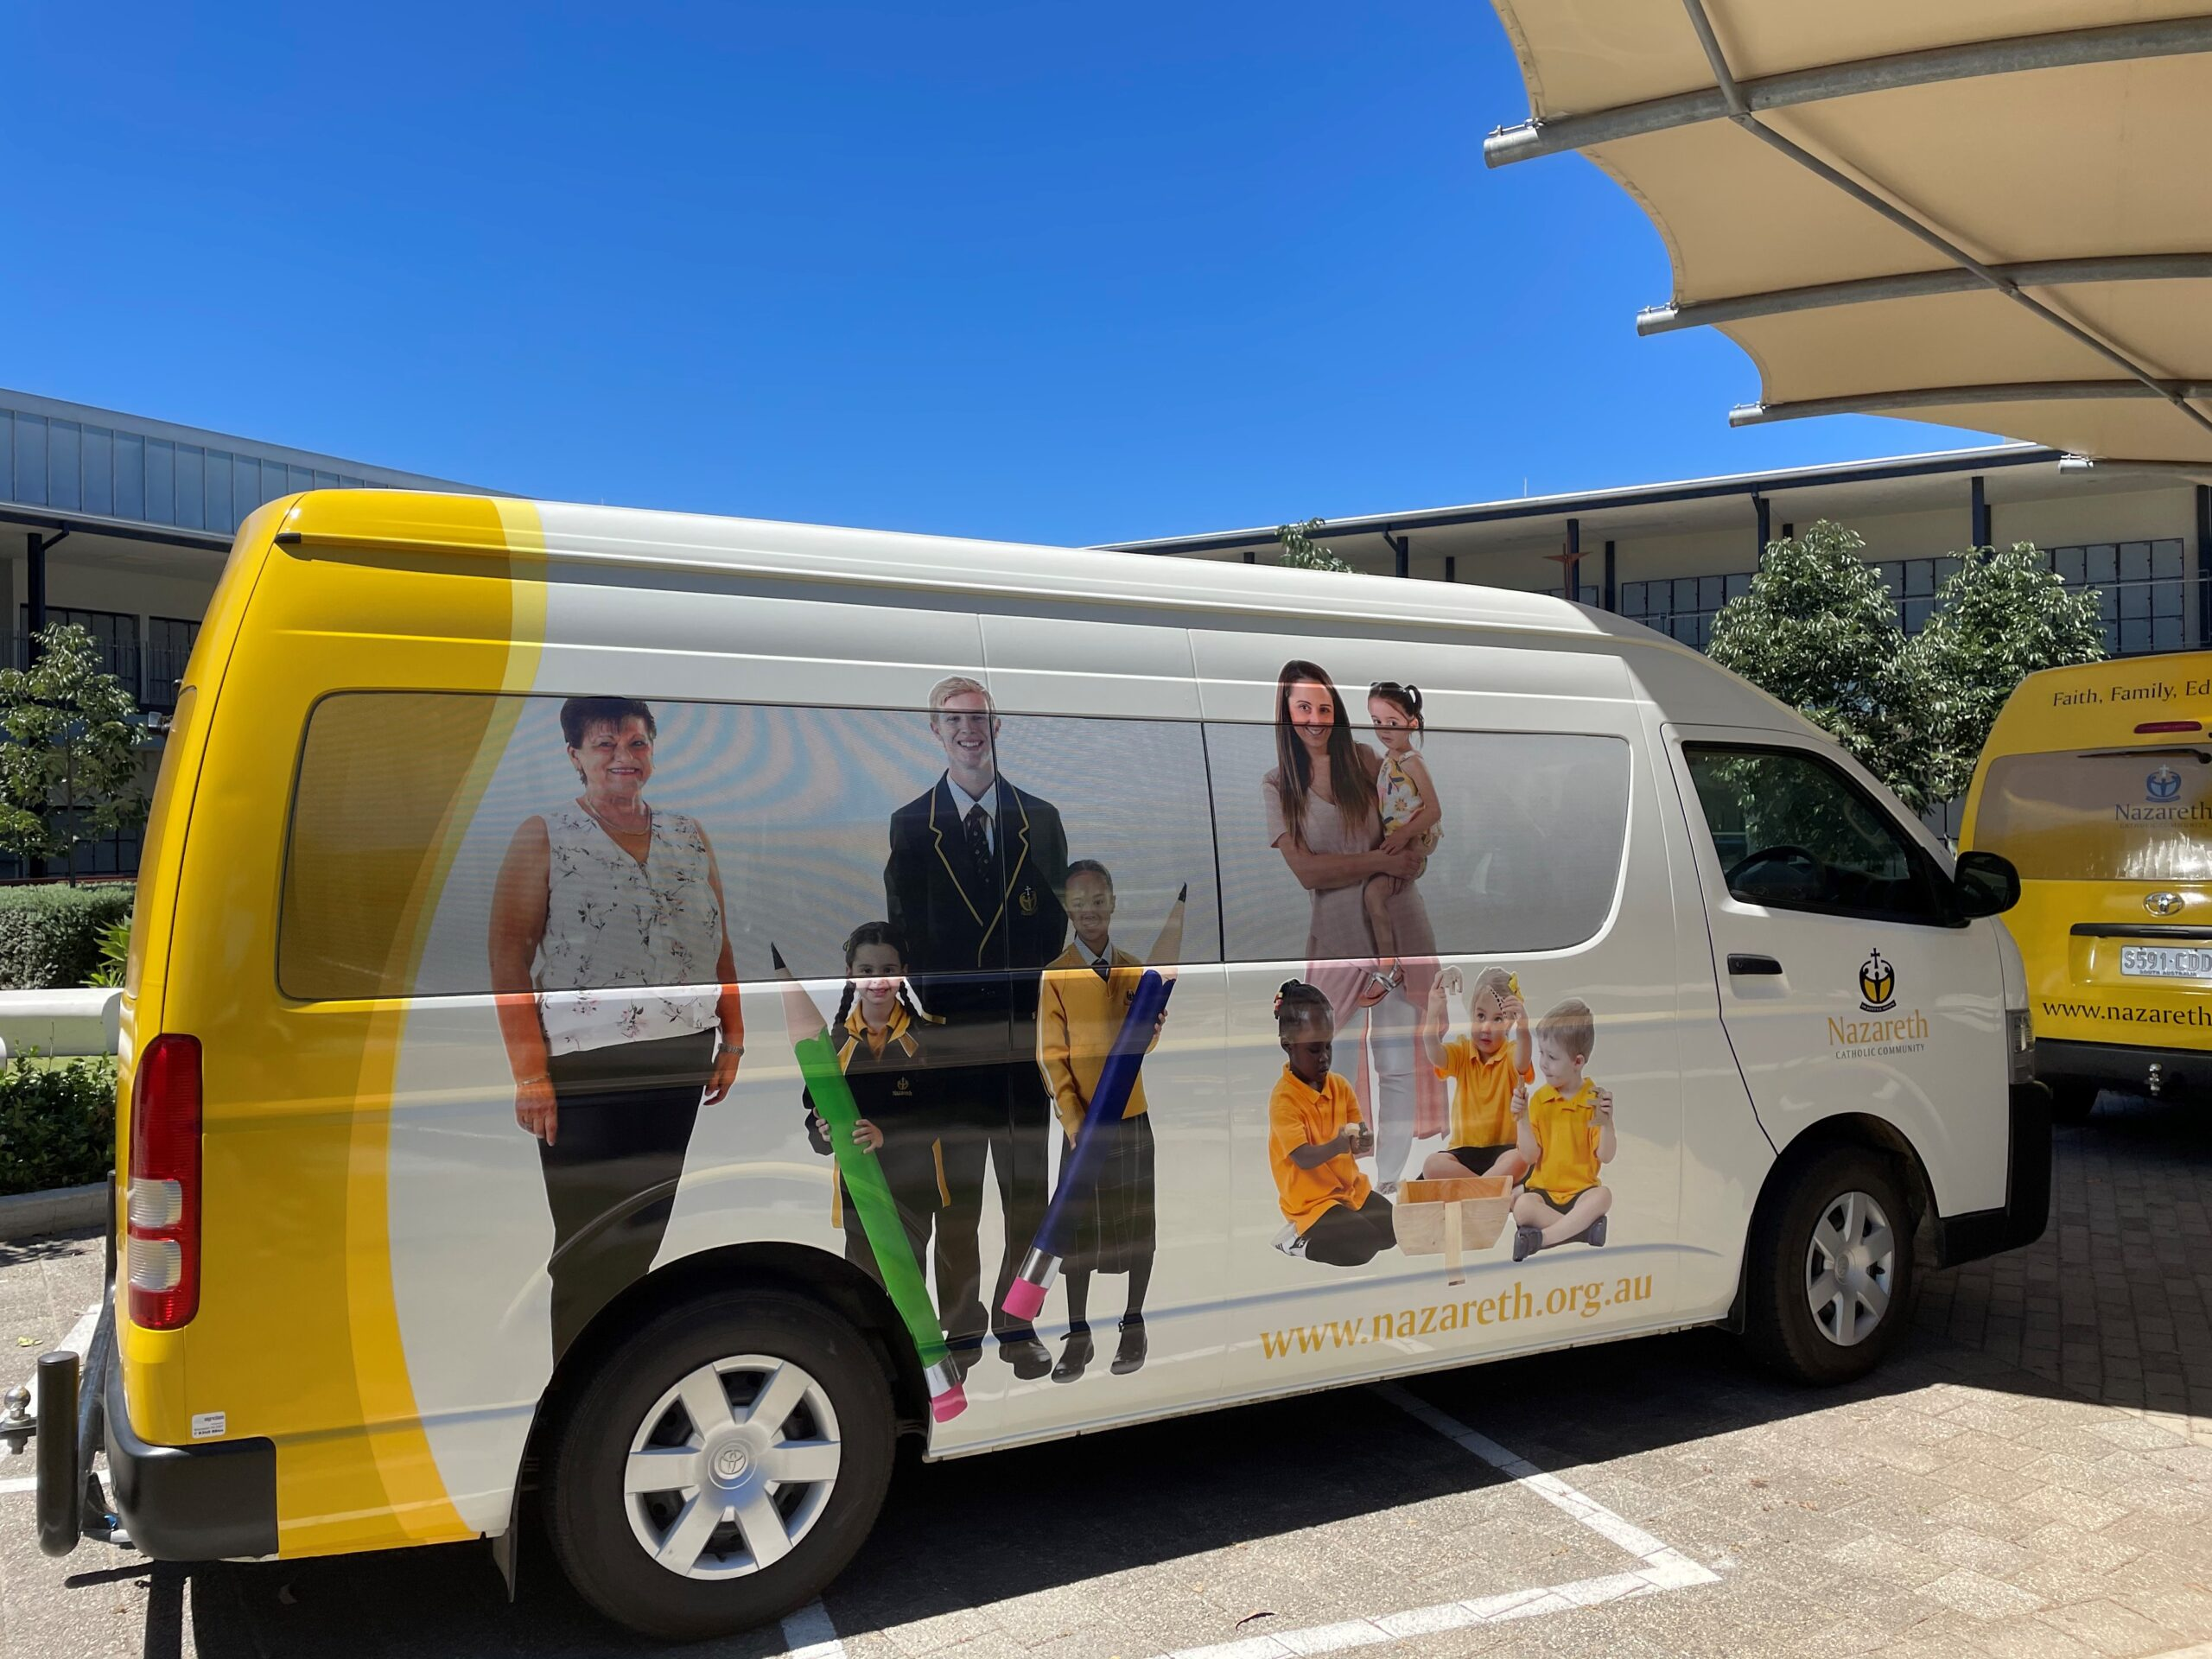 custom vehicle graphics and lettering on school bus Adelaide